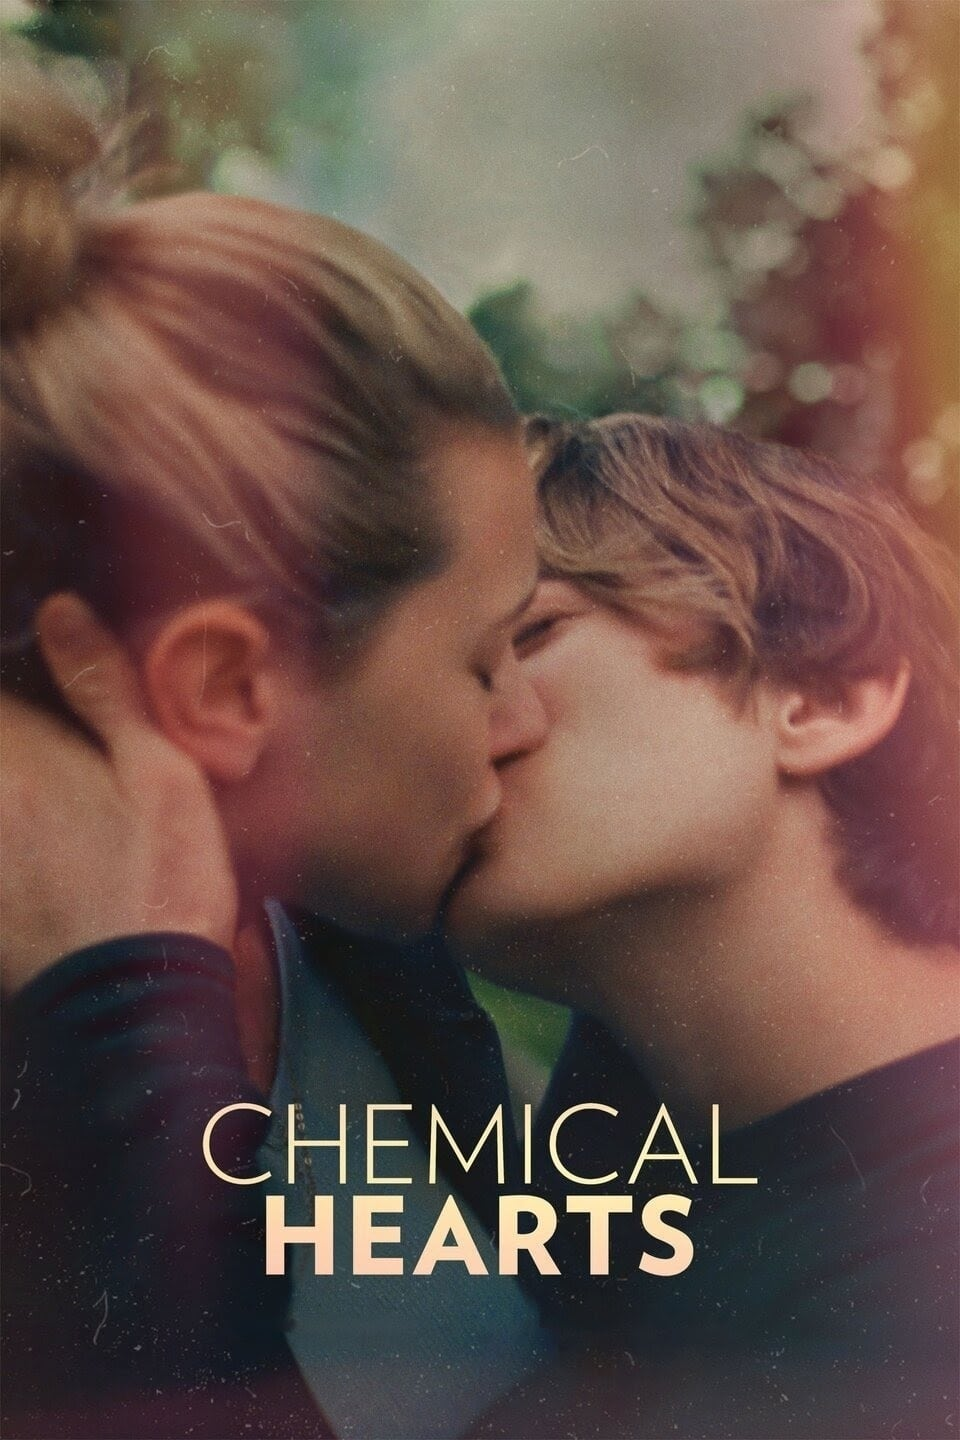 Chemical-Hearts-2020-4536